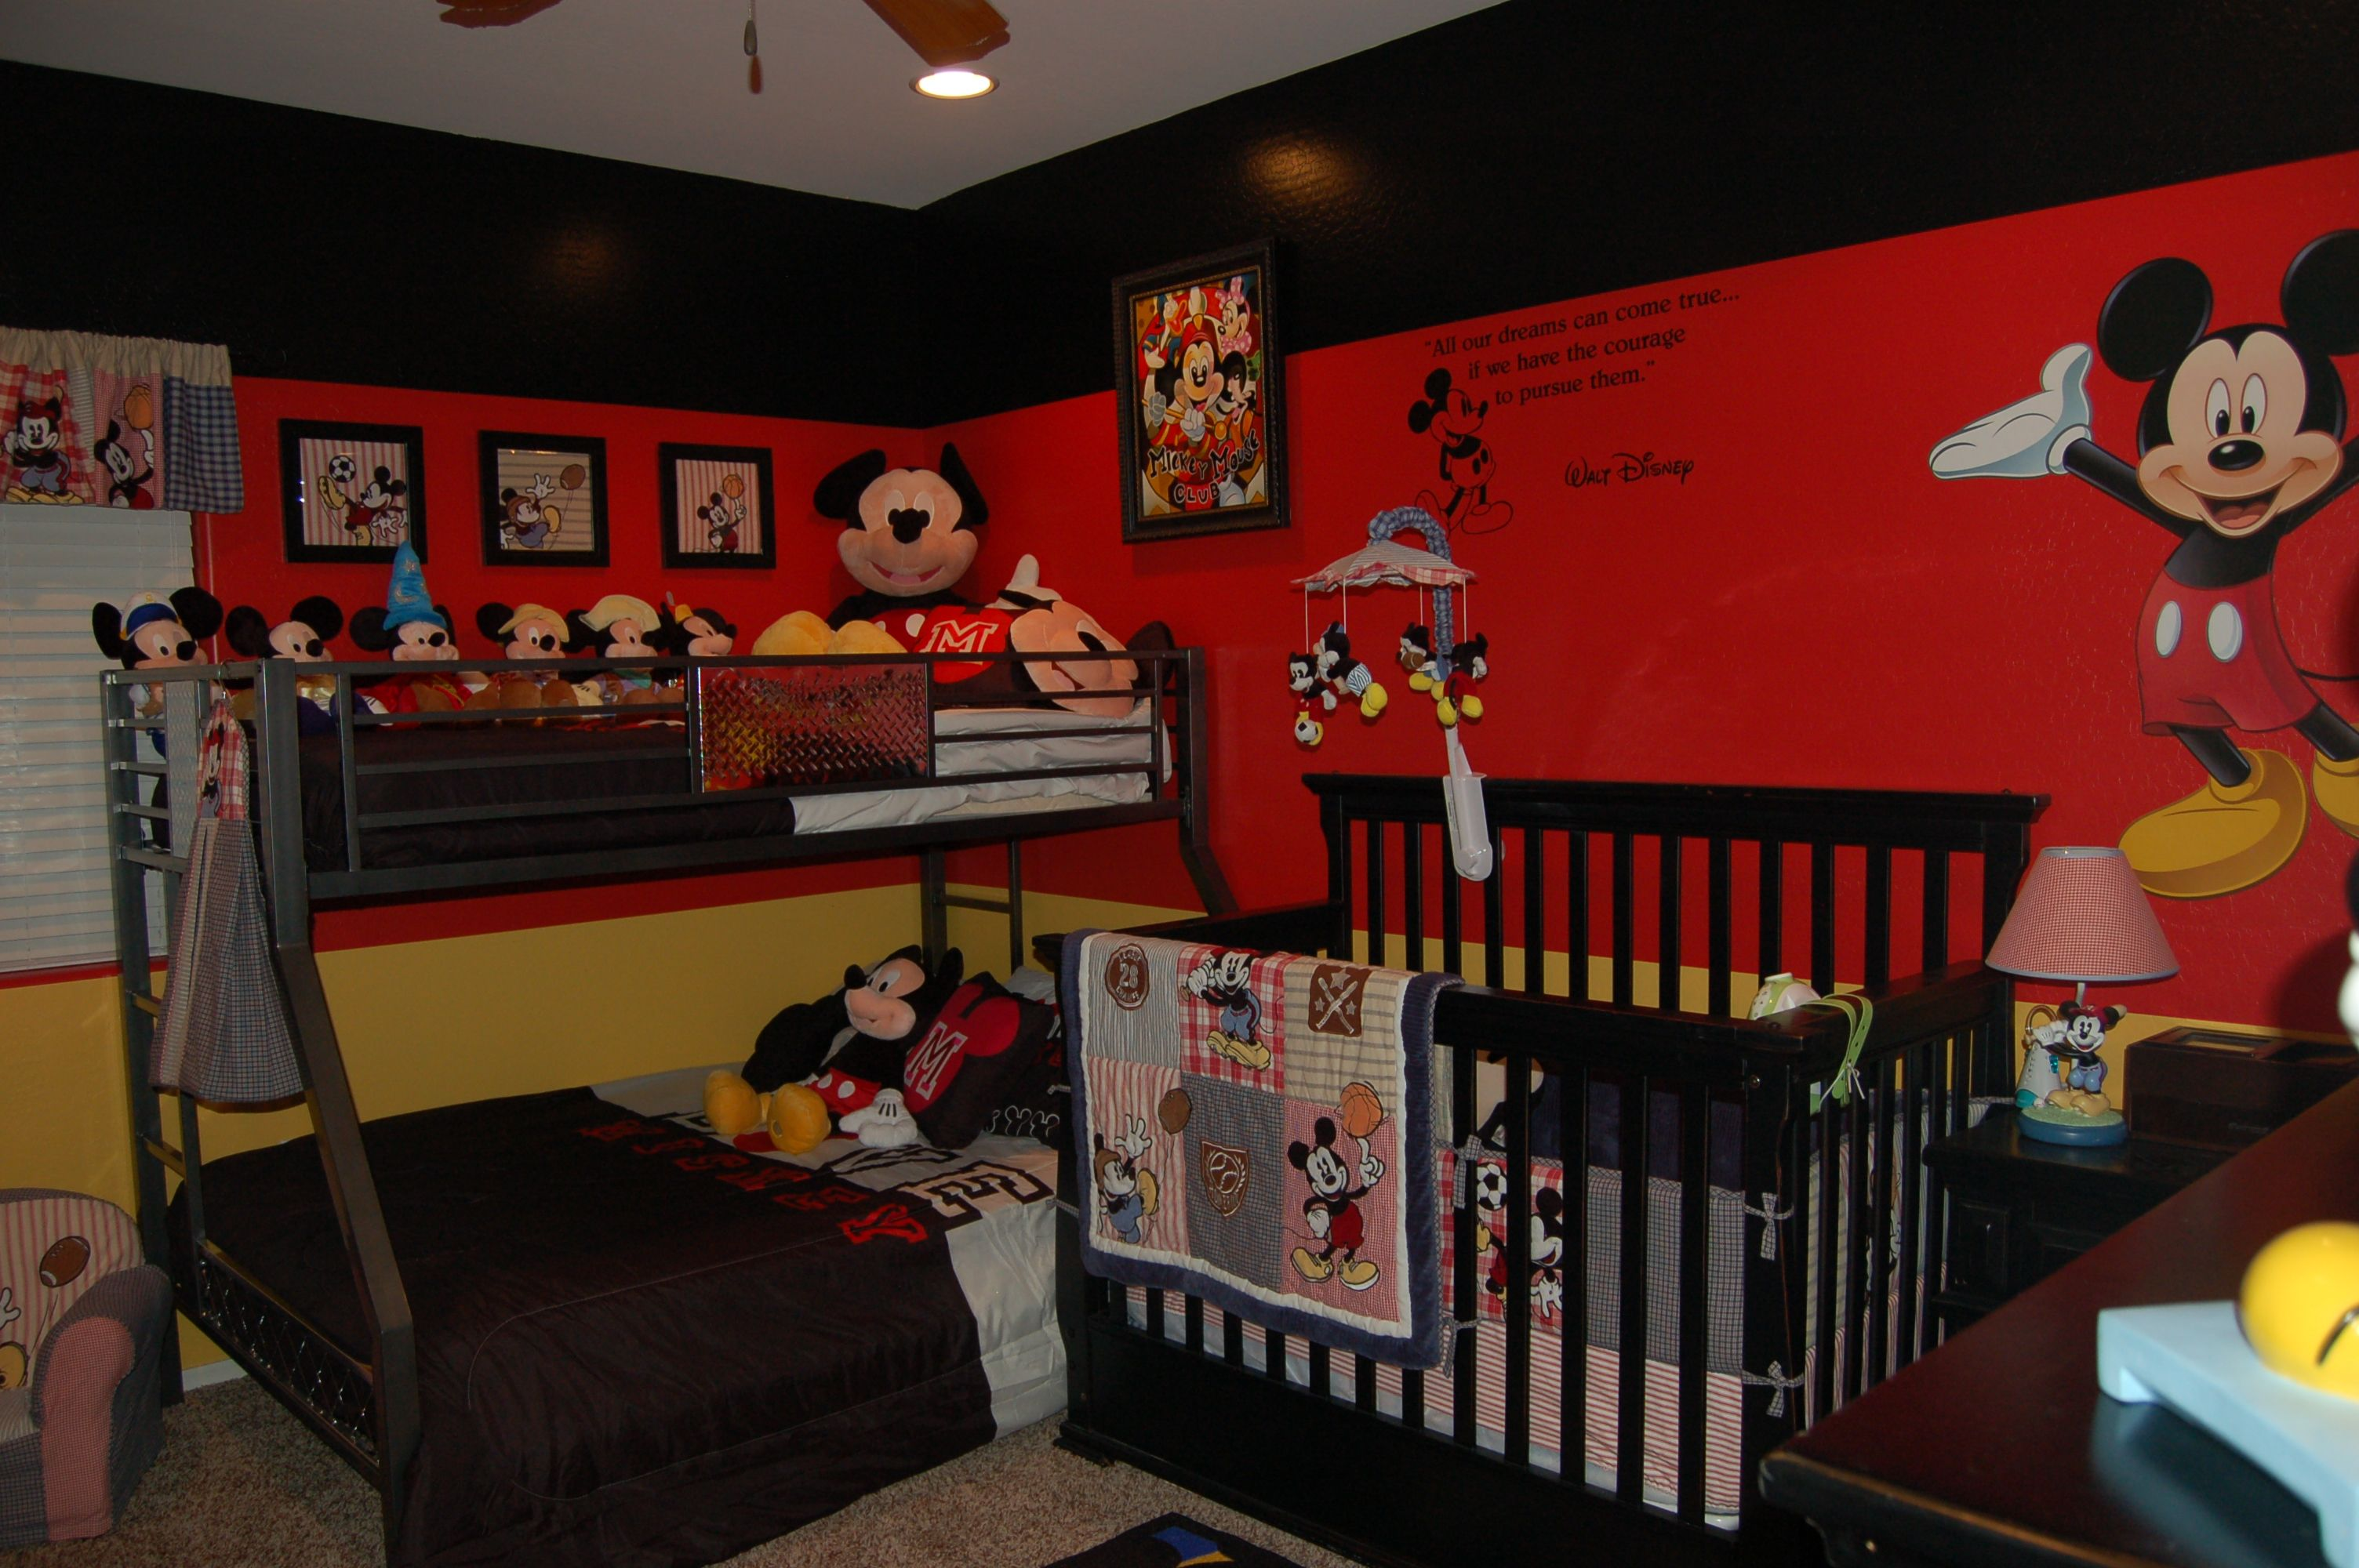 Disney Mickey Mouse Bedroom; Decorating www.mydisneylove.com ...